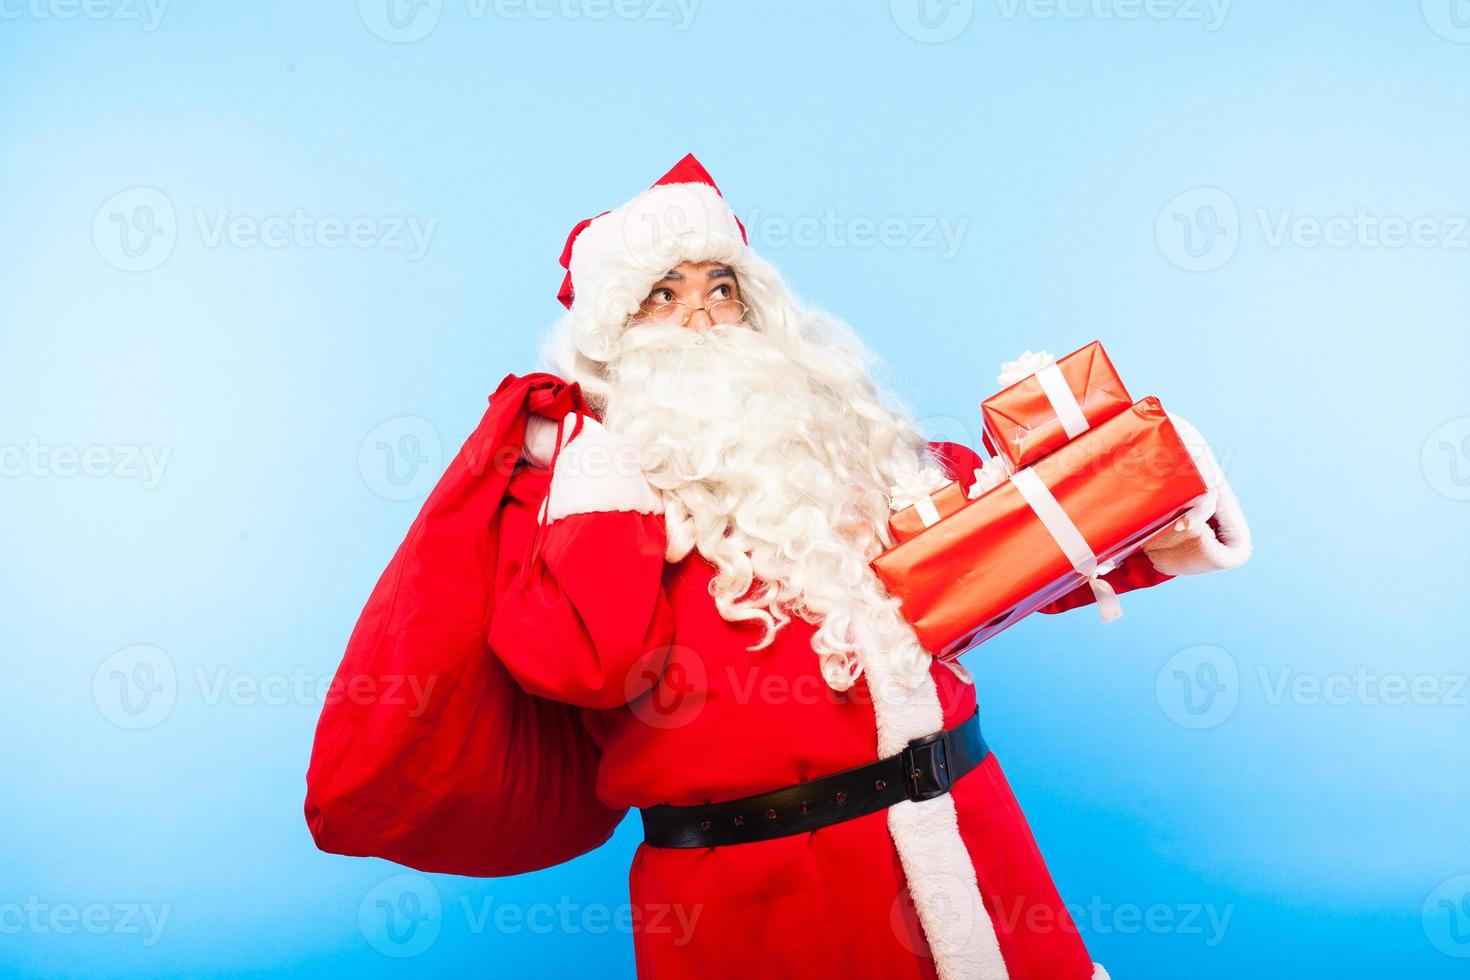 santa claus with gifts on hands on blue background photo